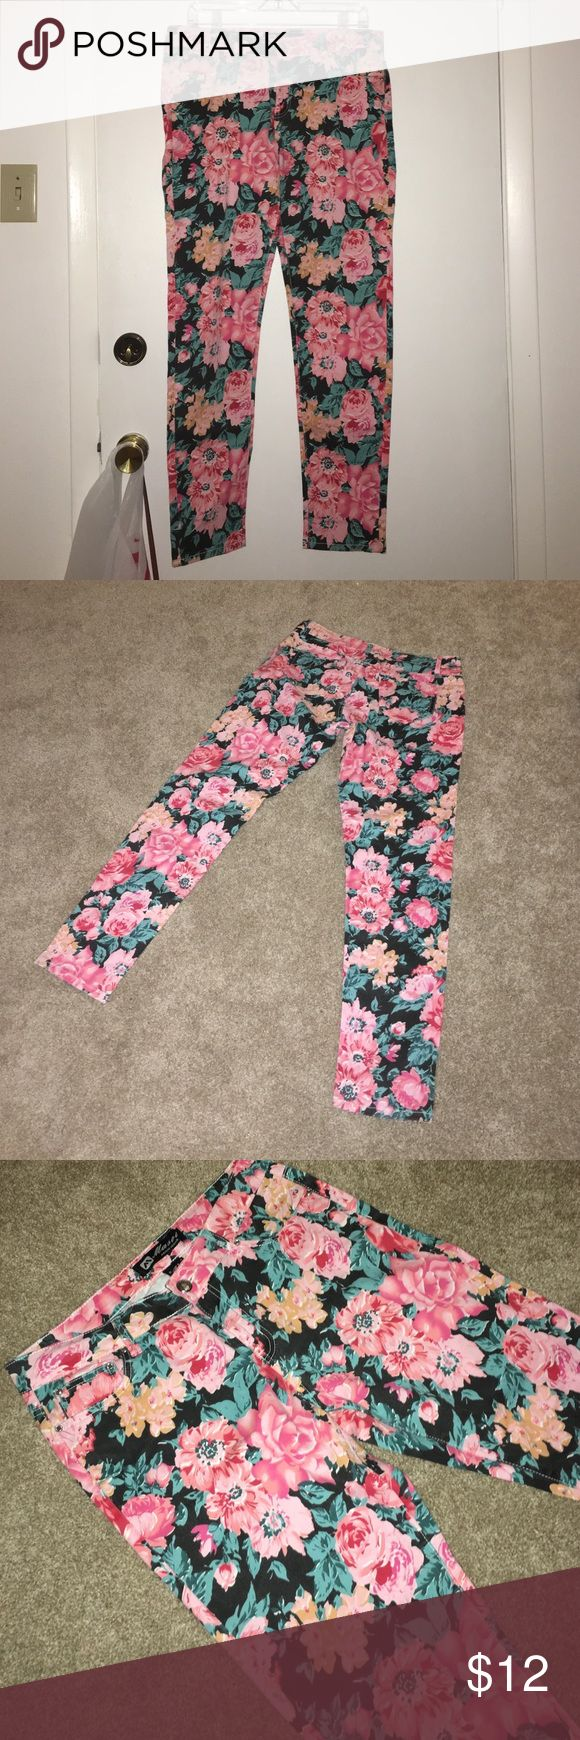 NEW Floral Print Skinny Jeans Brand New!! Never worn!! A floral print pair of skinny jeans that look and feel great! The material is super light, perfect for a Sunday afternoon in the park!! Masoi Jeans Skinny